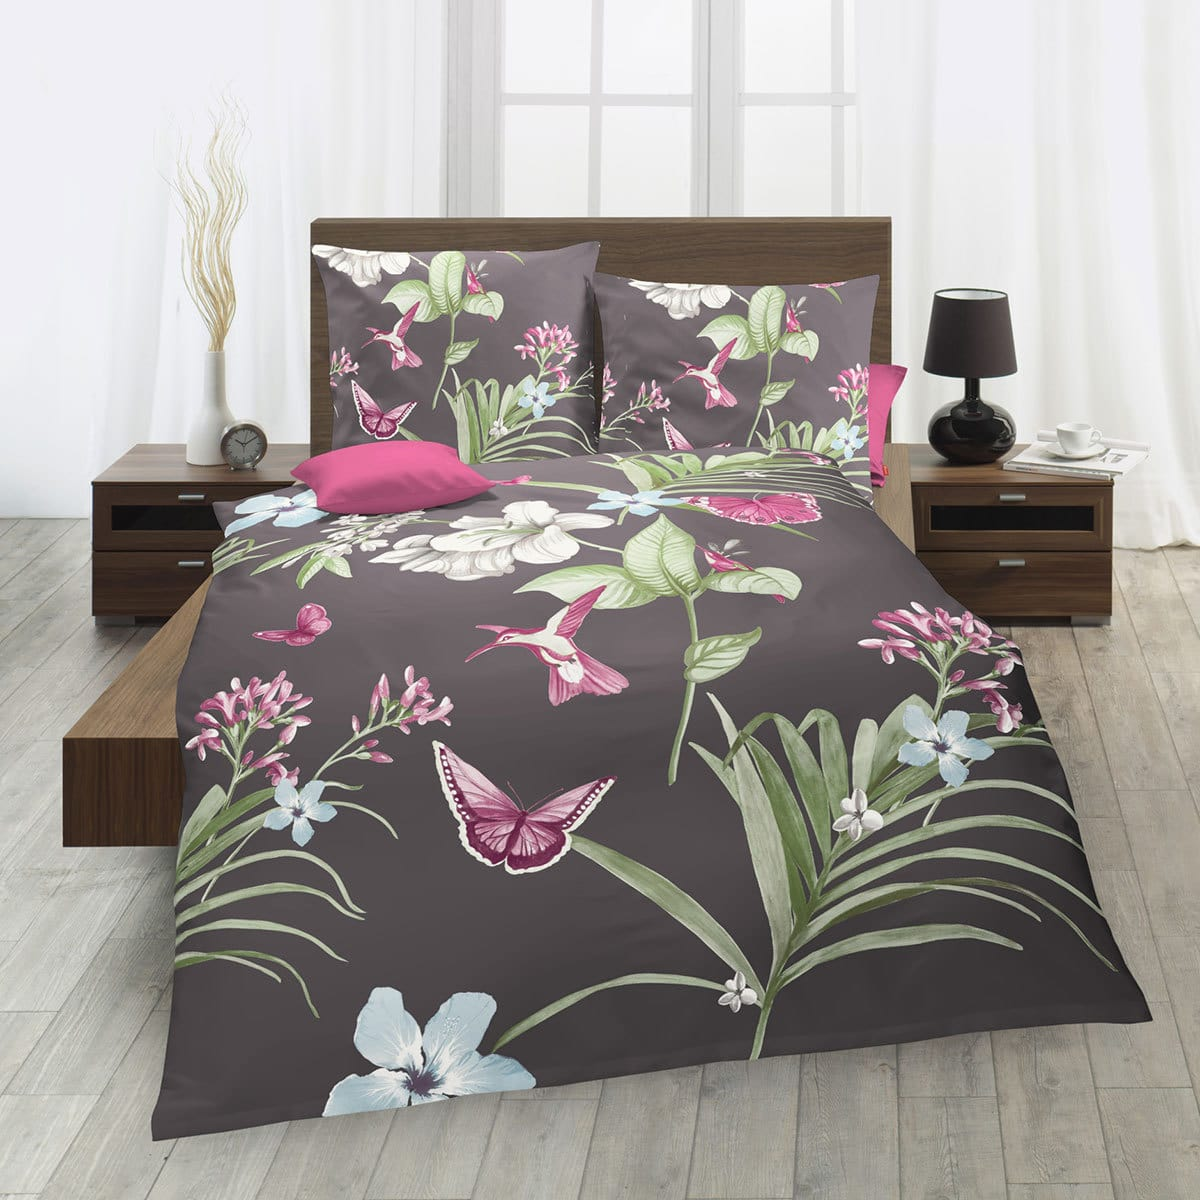 traumschlaf mako satin bettw sche schmetterlinge lila g nstig online kaufen bei bettwaren shop. Black Bedroom Furniture Sets. Home Design Ideas